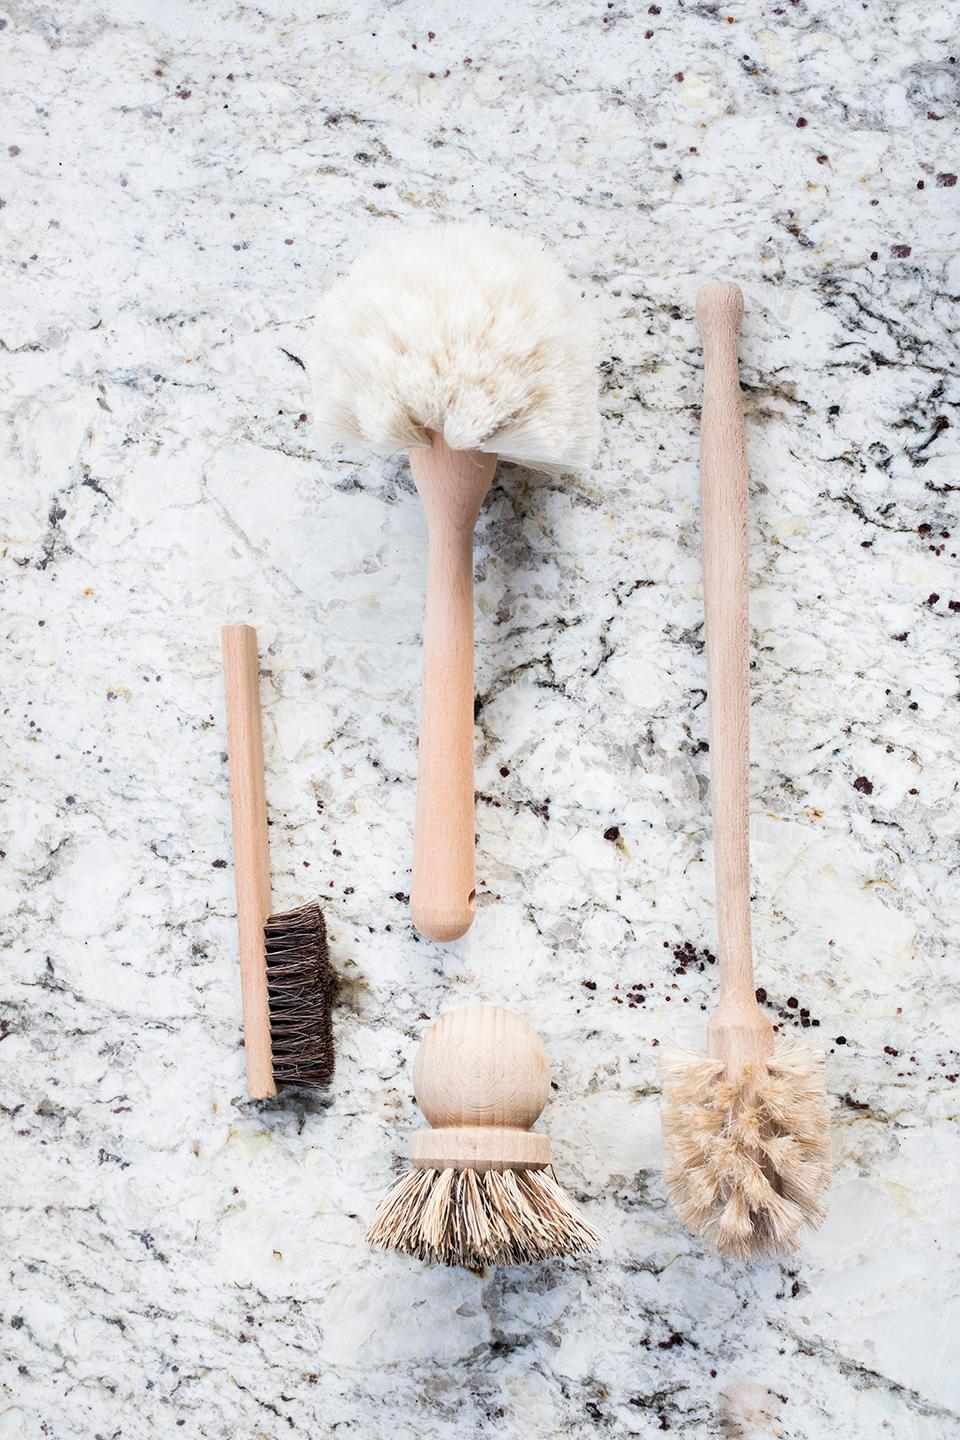 Alternatives to animal hair include coco husk, sisal, palmyra, tampico and aregna fibers; these natural fibers are incredibly strong and durable, and are resistant to water and heat. (Image: Ashley Hafstead)